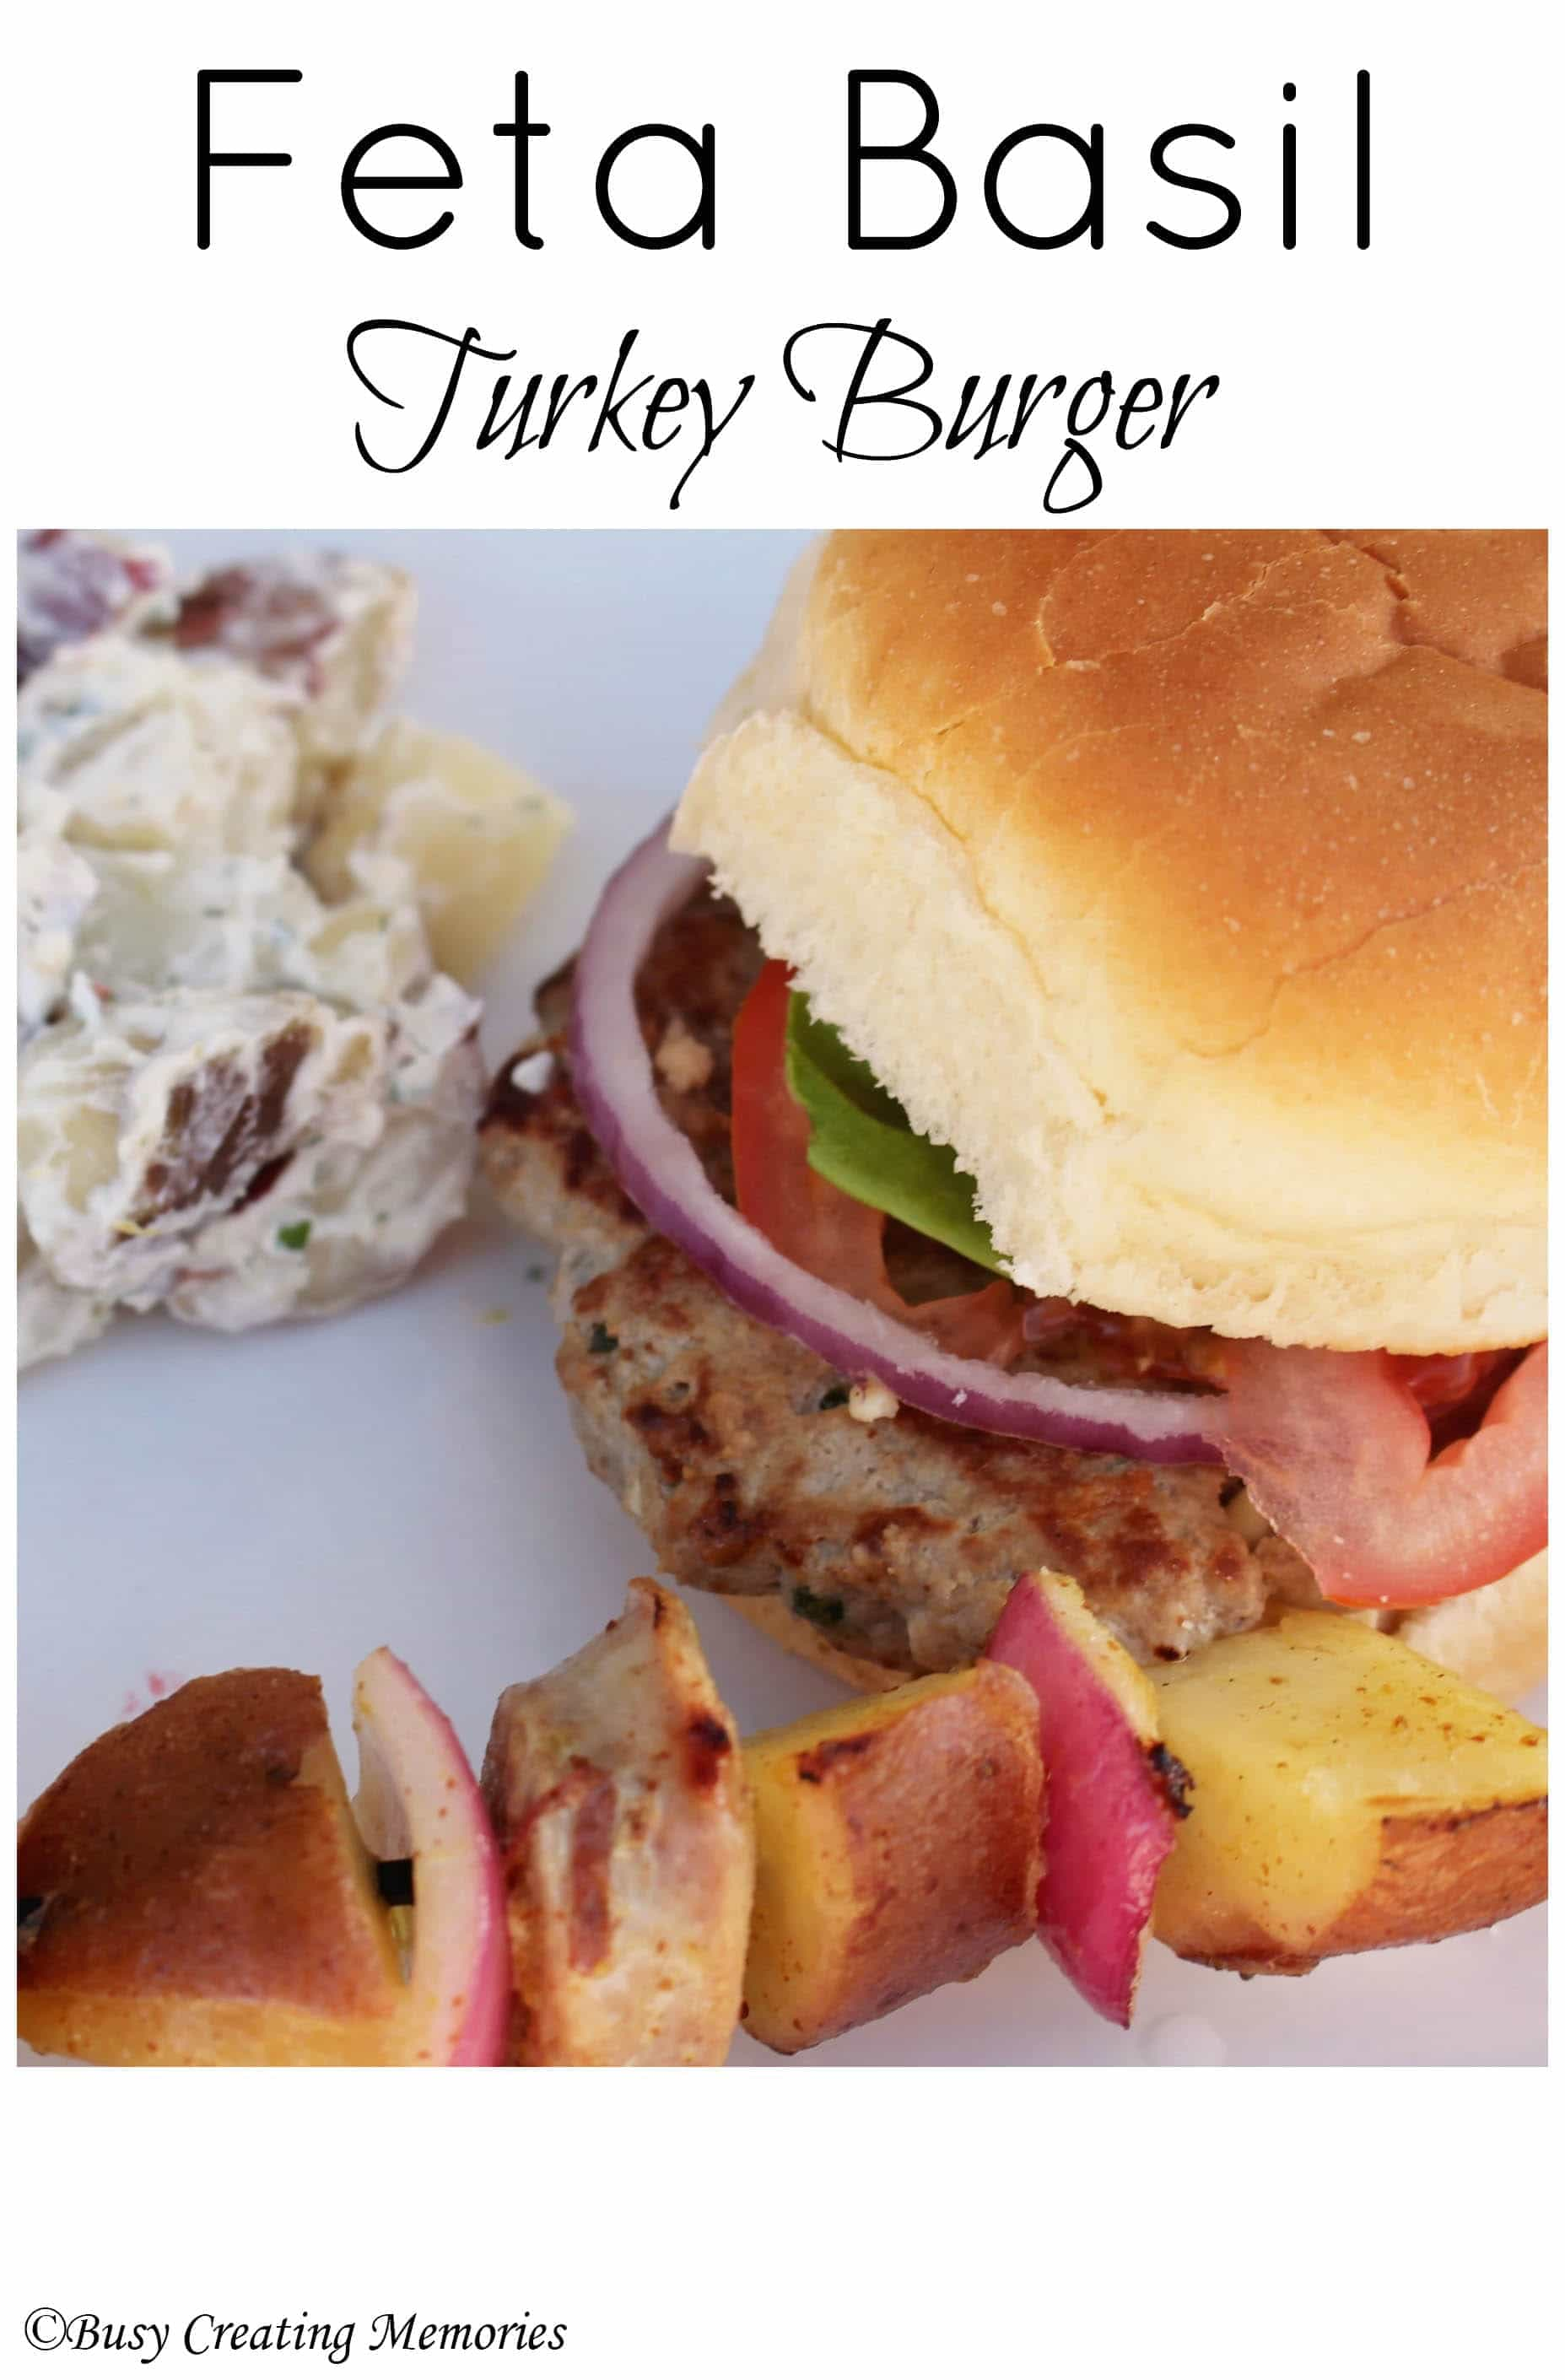 ... One of my absolutely favorite burgers is a Feta Basil Turkey burger